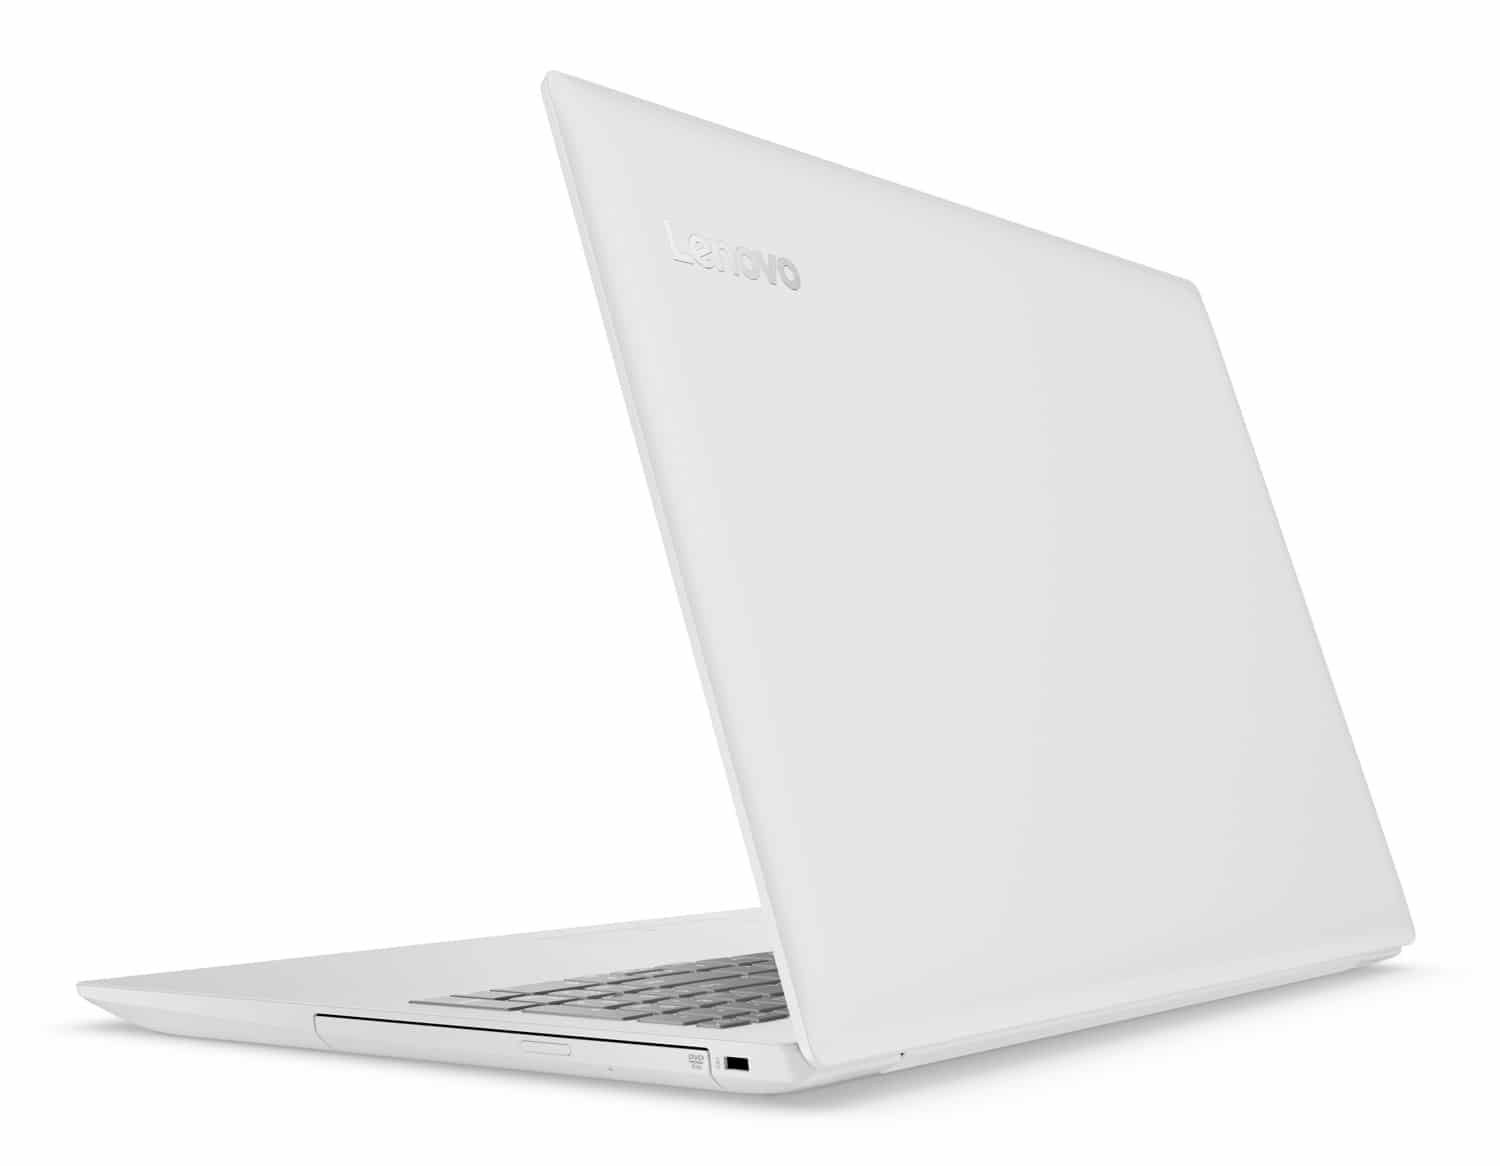 Lenovo IdeaPad 320-15IKBN, PC portable 15 pouces Blanc Full i5 920MX SSD à 549€